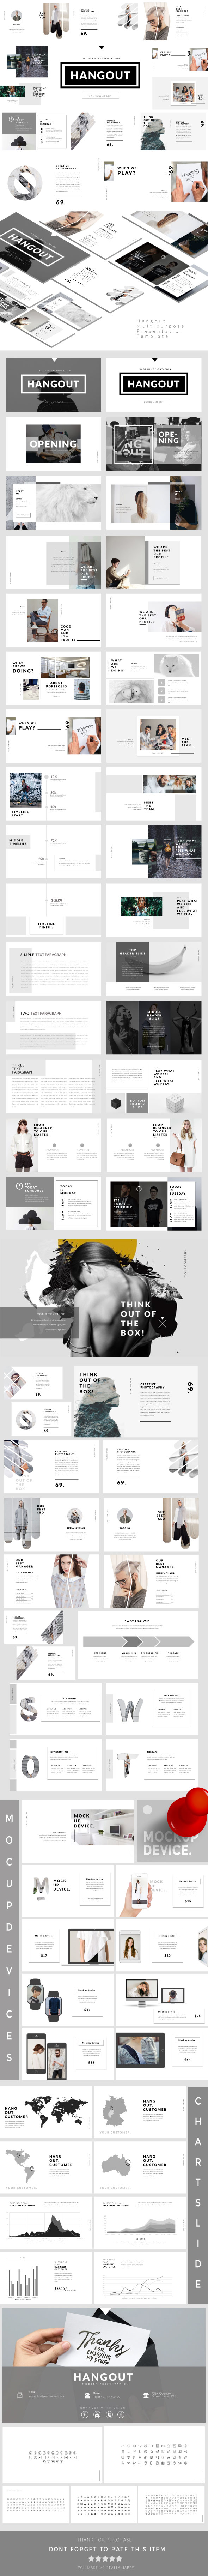 Hangout - Multipurpose Presentation Templates - Business PowerPoint Templates